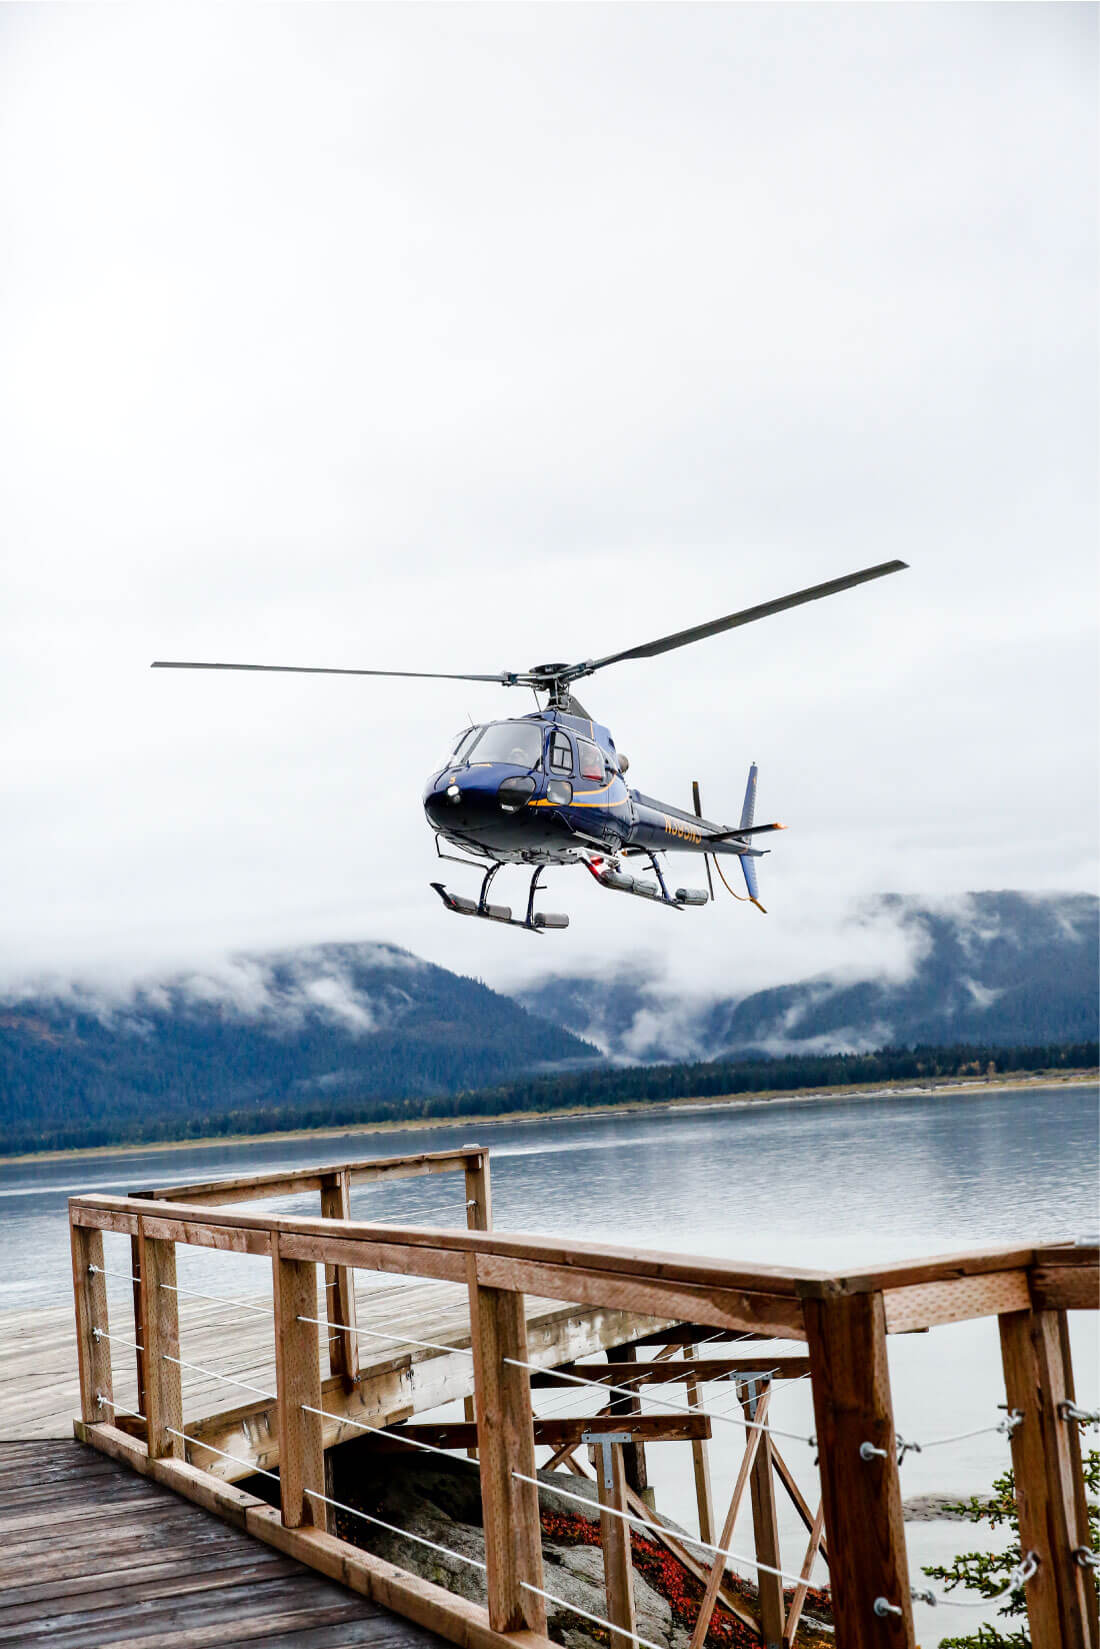 Alaska Cruise Excursions - one of the most amazing excursions I've ever been on! Go to Taku Glacier and experience it yourself. Landing the helicopter from www.thirtyhandmadedays.com